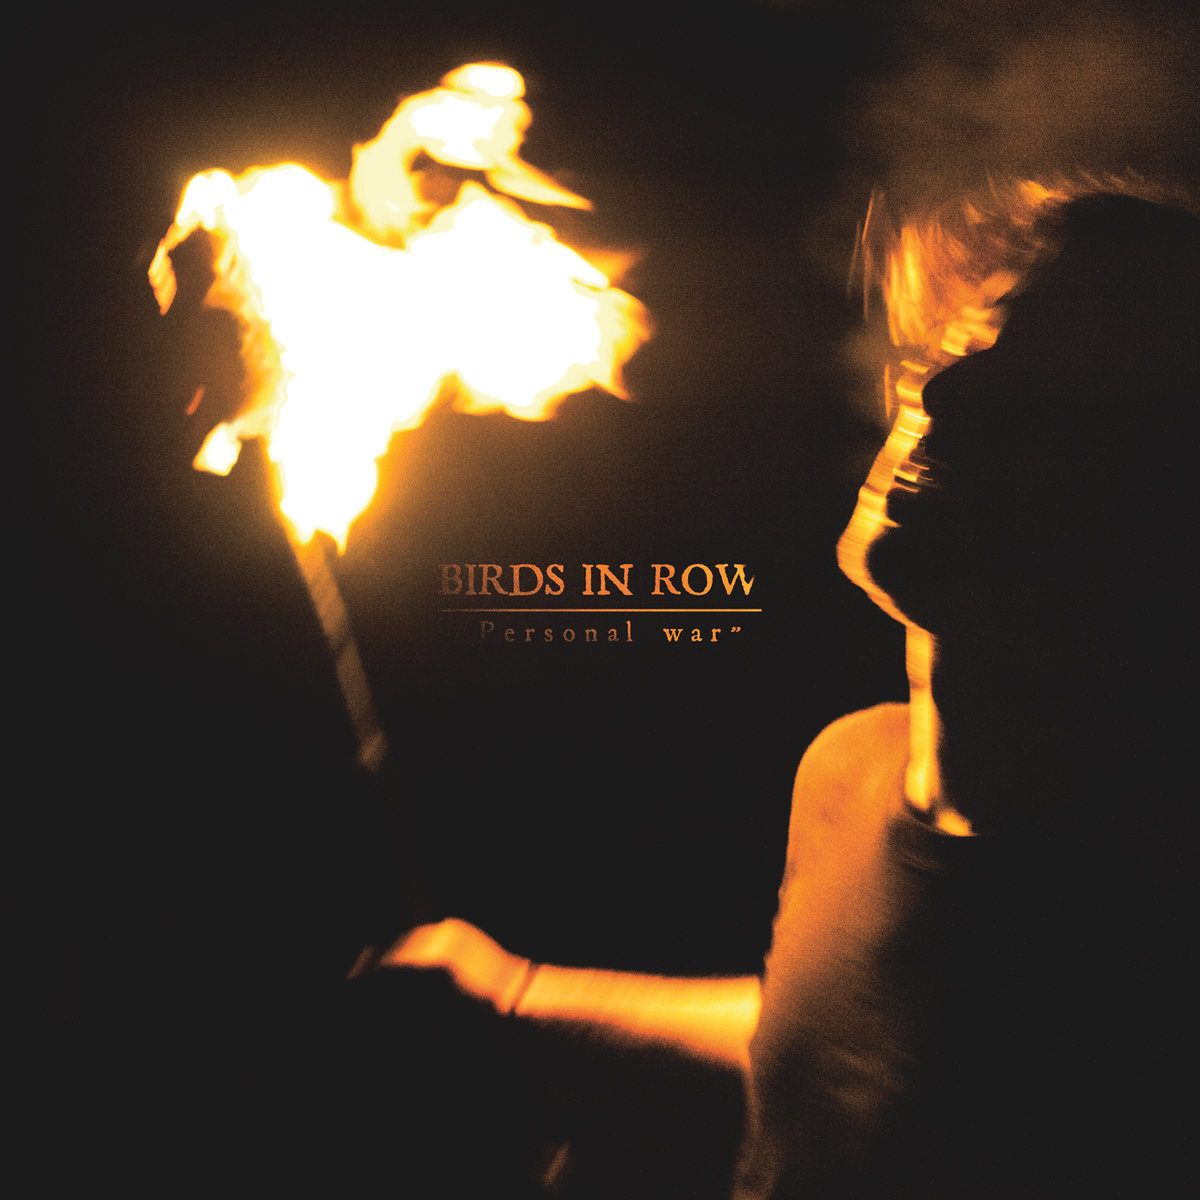 BIRDS IN ROW Personal War - Vinyl LP (transparent orange)